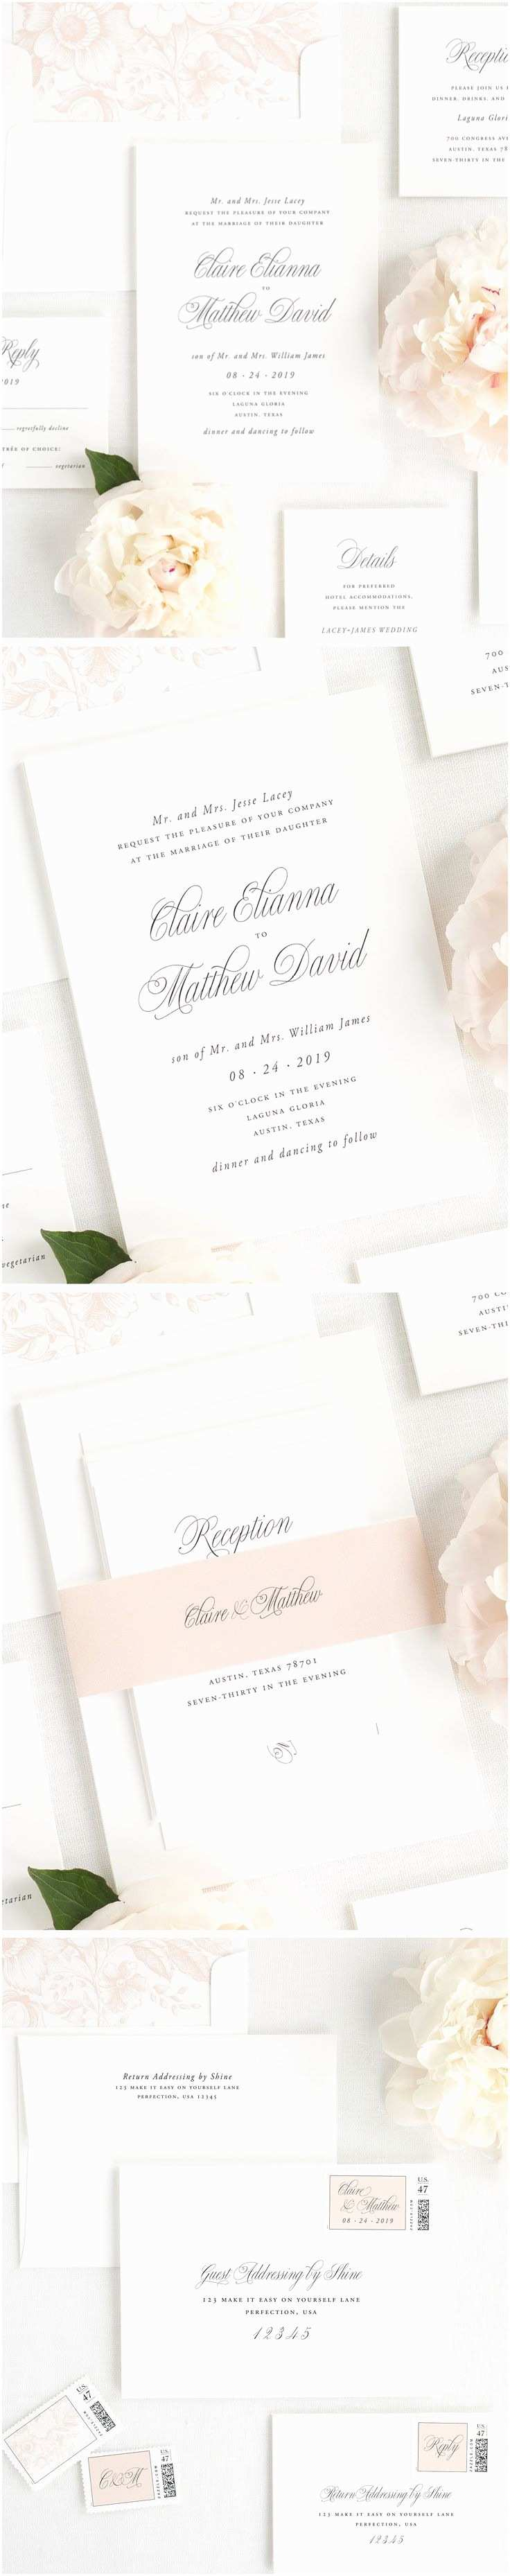 Wedding Invitation Addressing Service Best 25 Garden Wedding Invitations Ideas On Pinterest